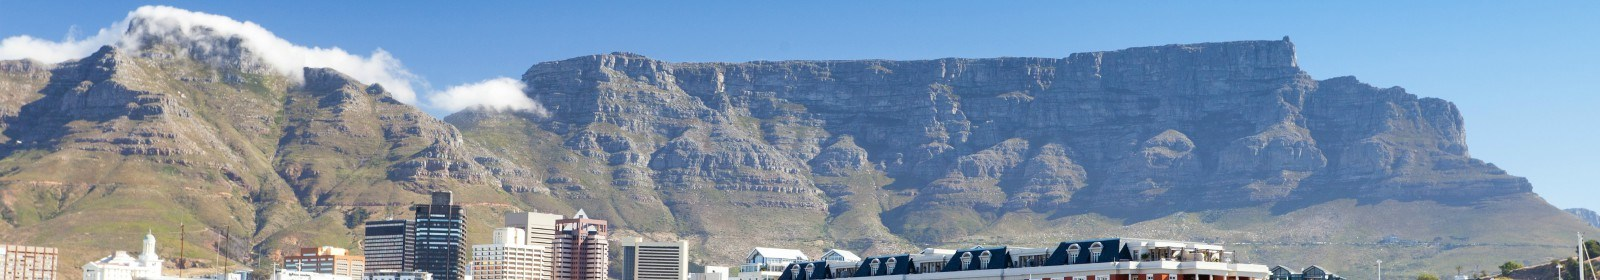 Affordable Cape Town neighbourhoods for first time buyers